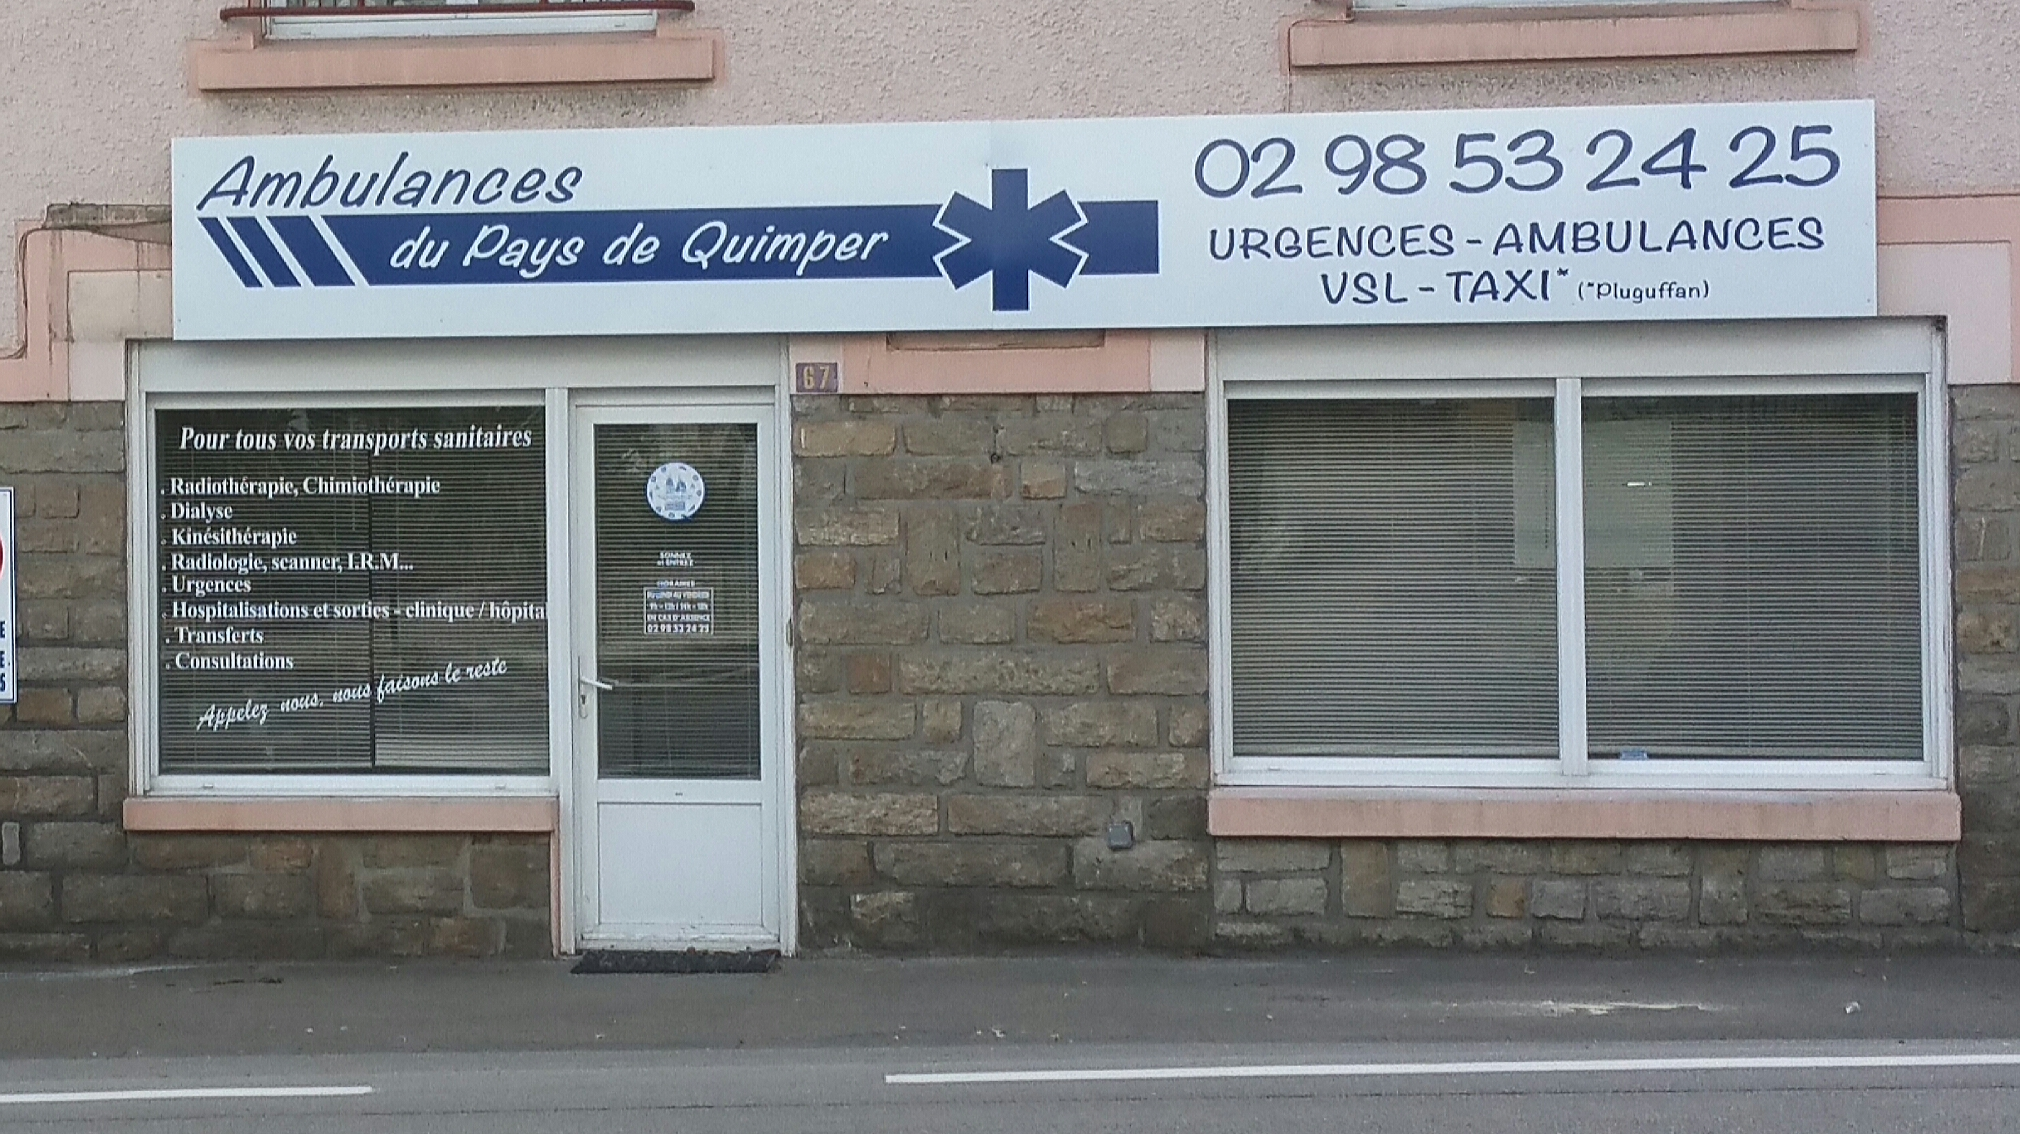 ambulances du pays de quimper free ambulance. Black Bedroom Furniture Sets. Home Design Ideas